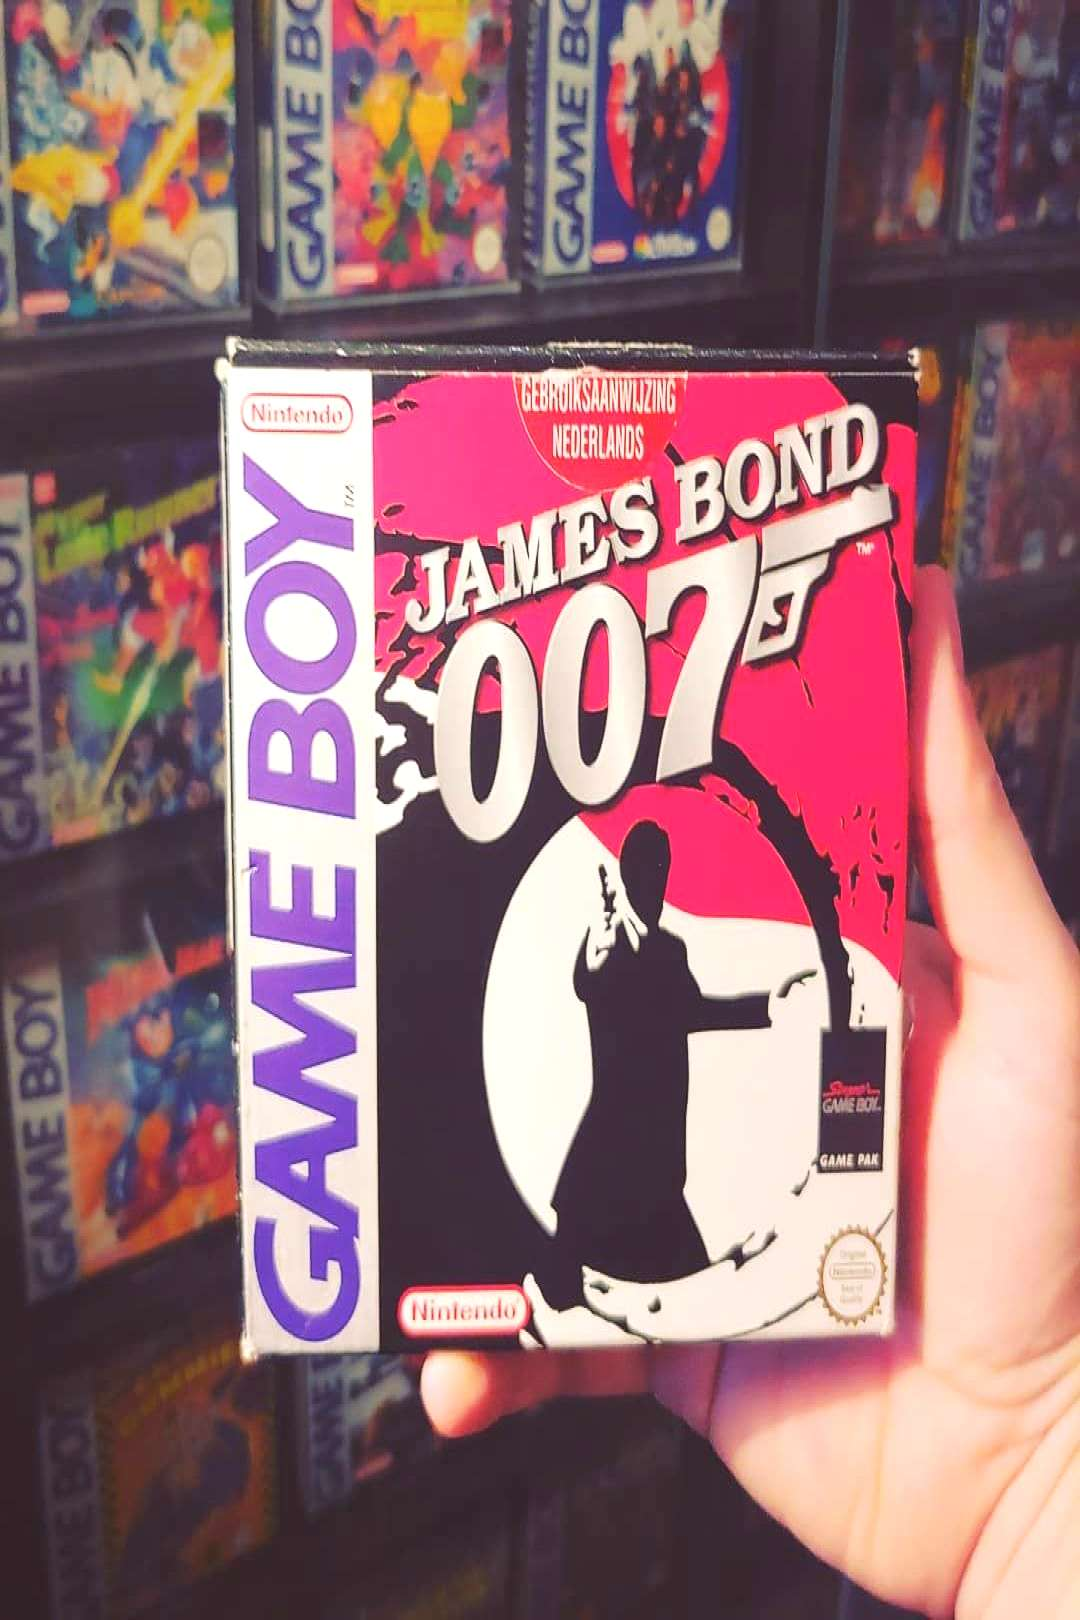 James Bond 007 Oneliners incoming! I'll start of the first one.